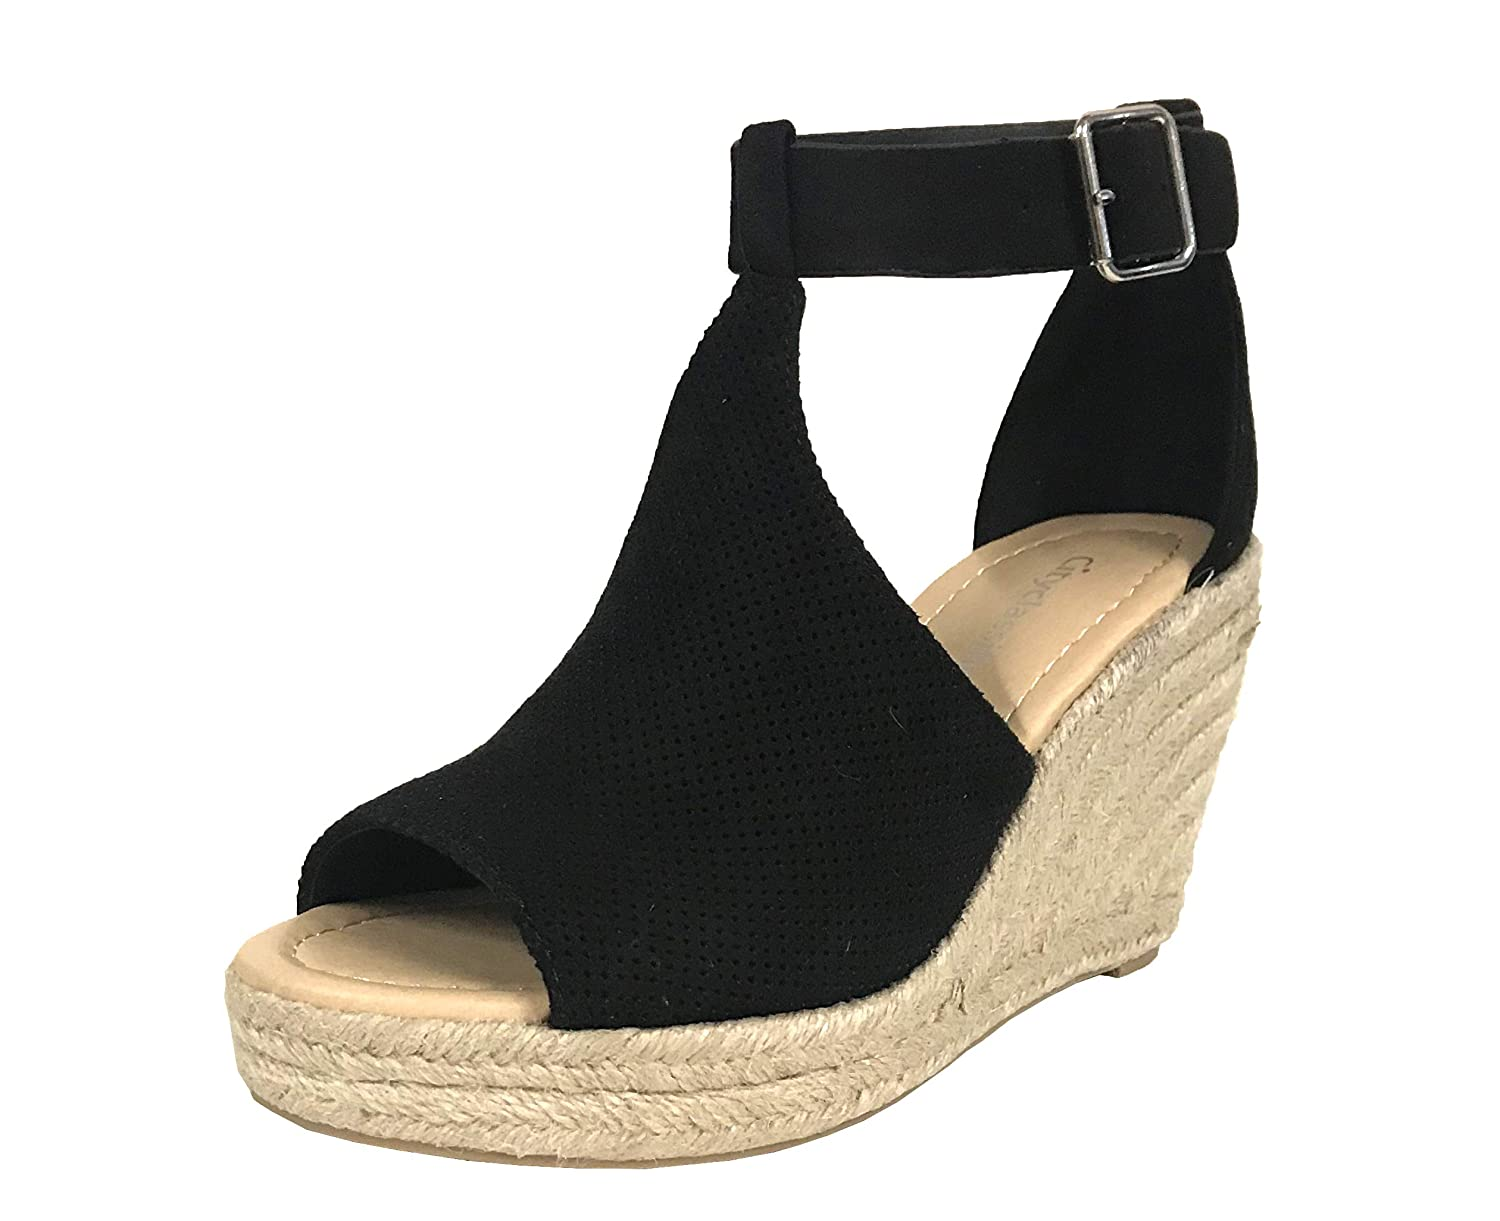 20bde7a8f72 City Classified Women s Perforated Cutout Faux Suede Espadrille Platform  Wedge Sandals